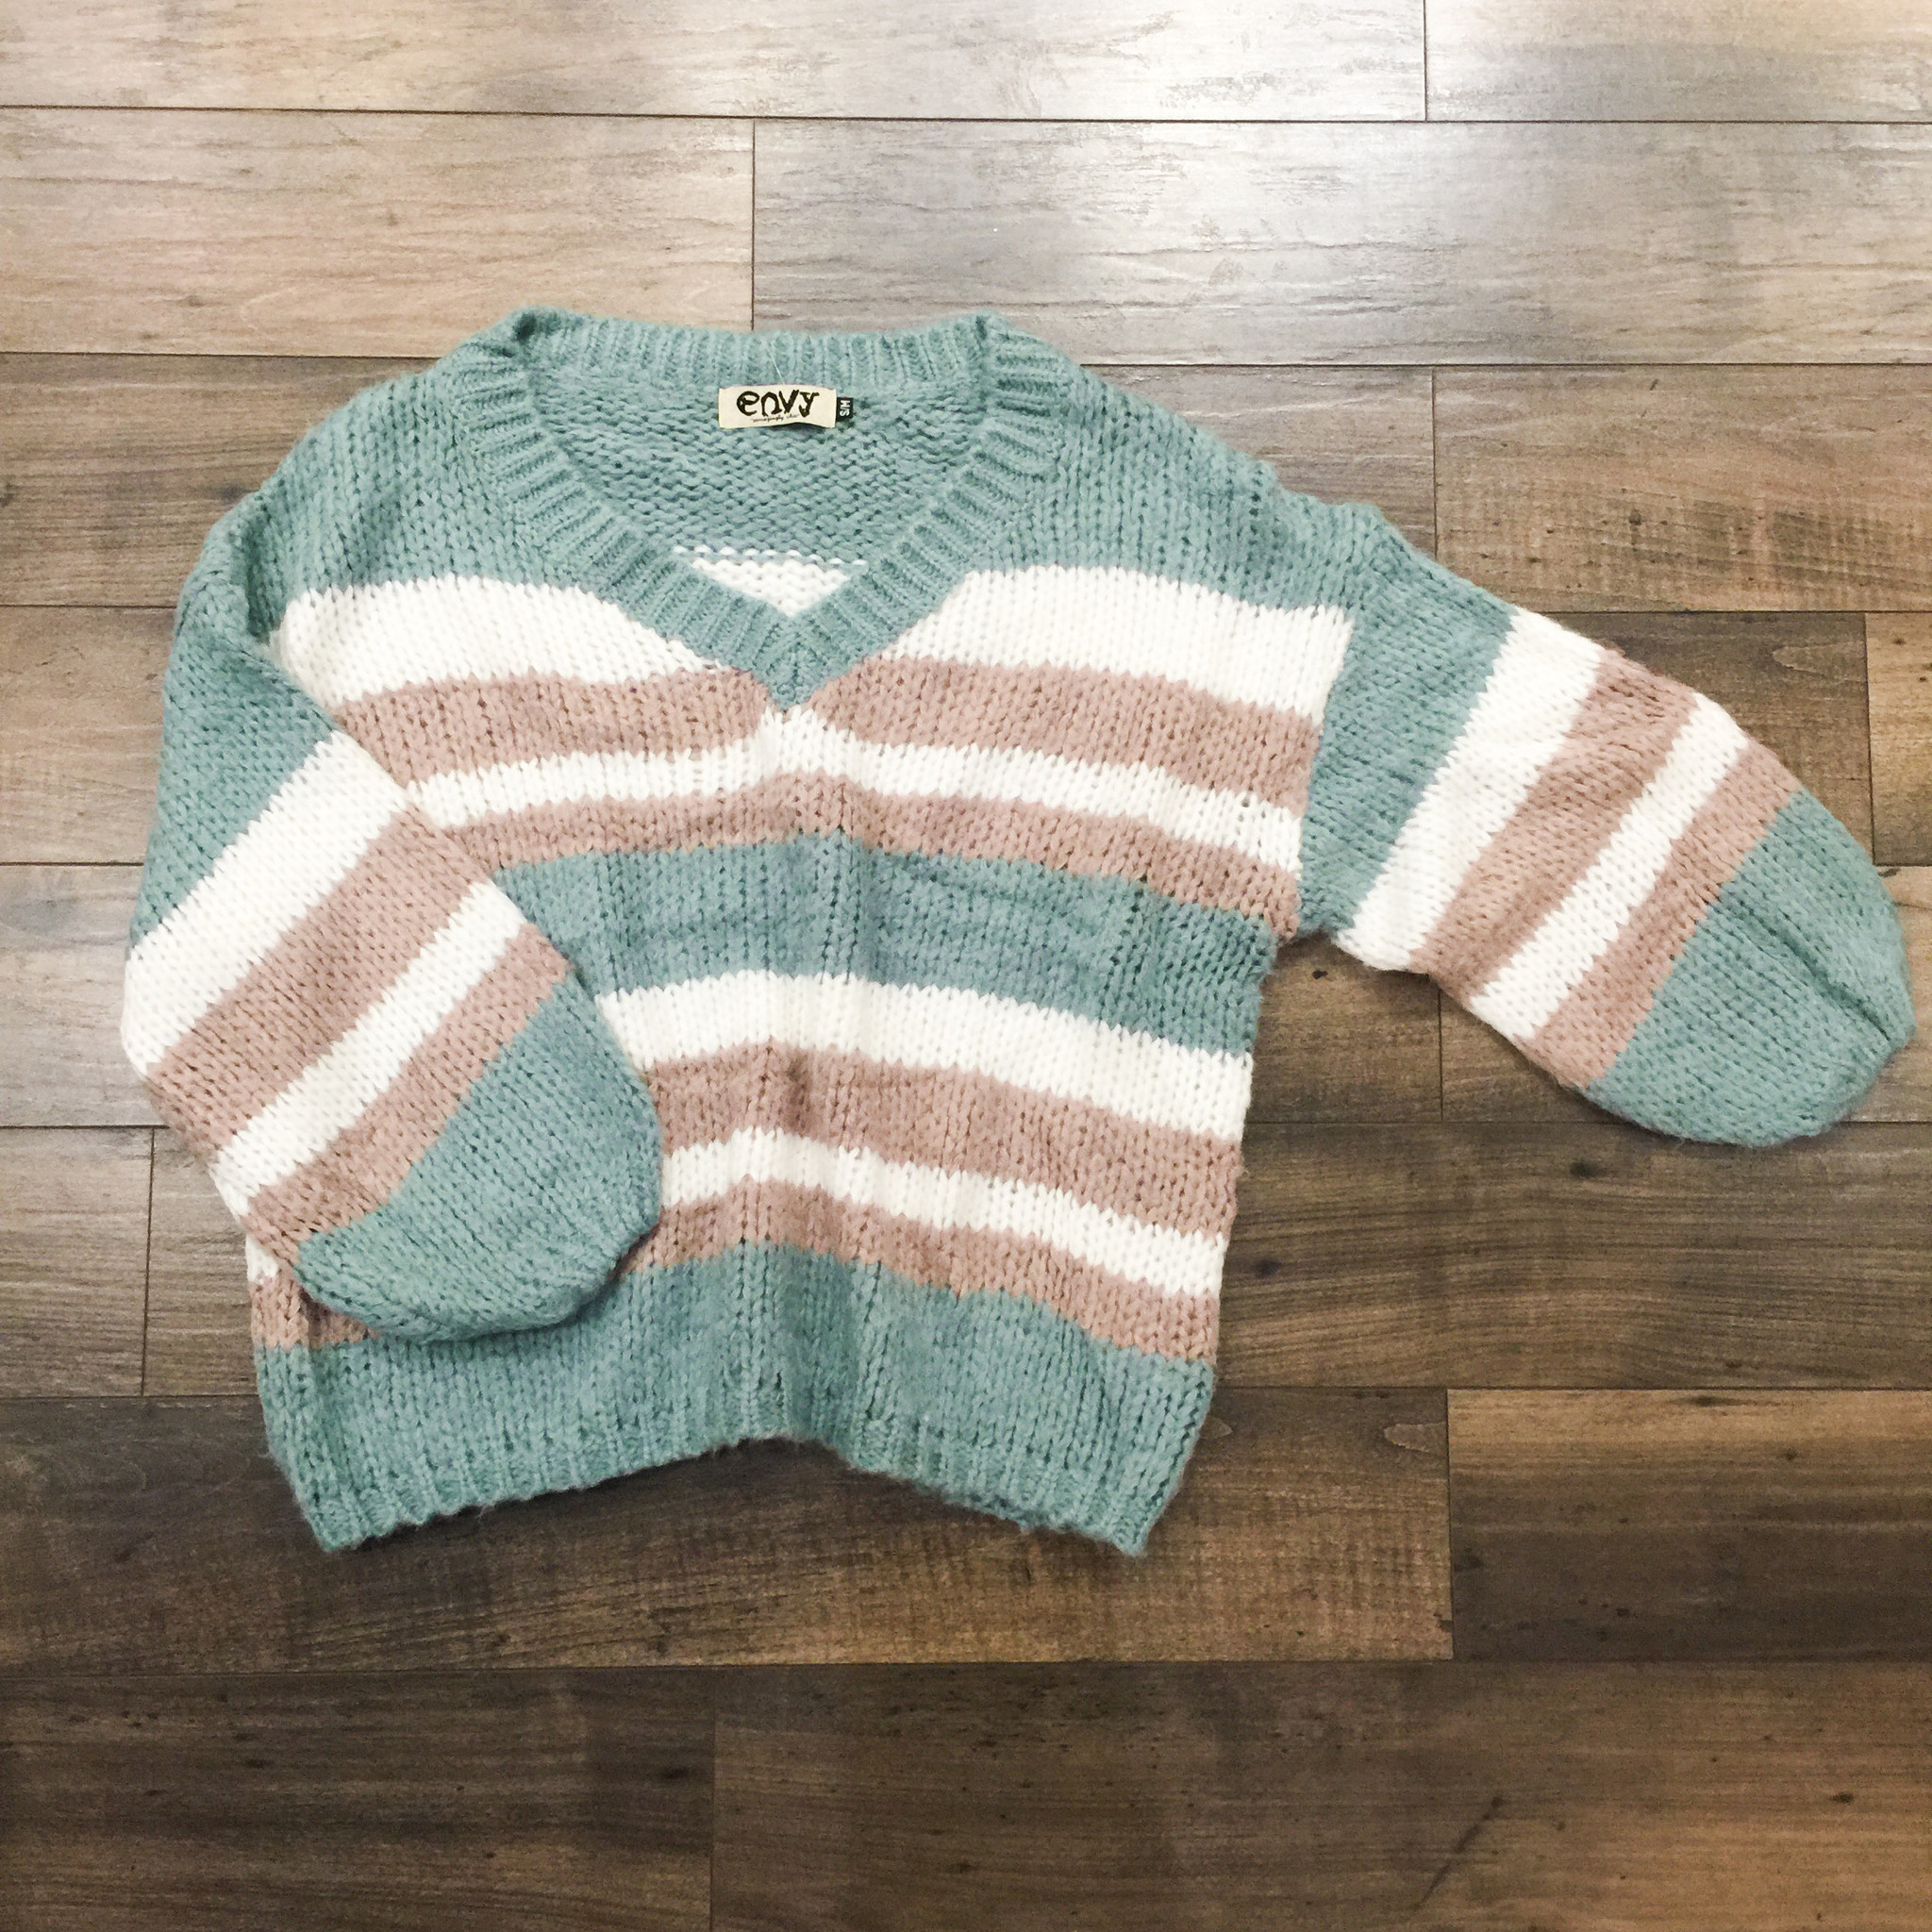 Envy Label Roger That Sweater